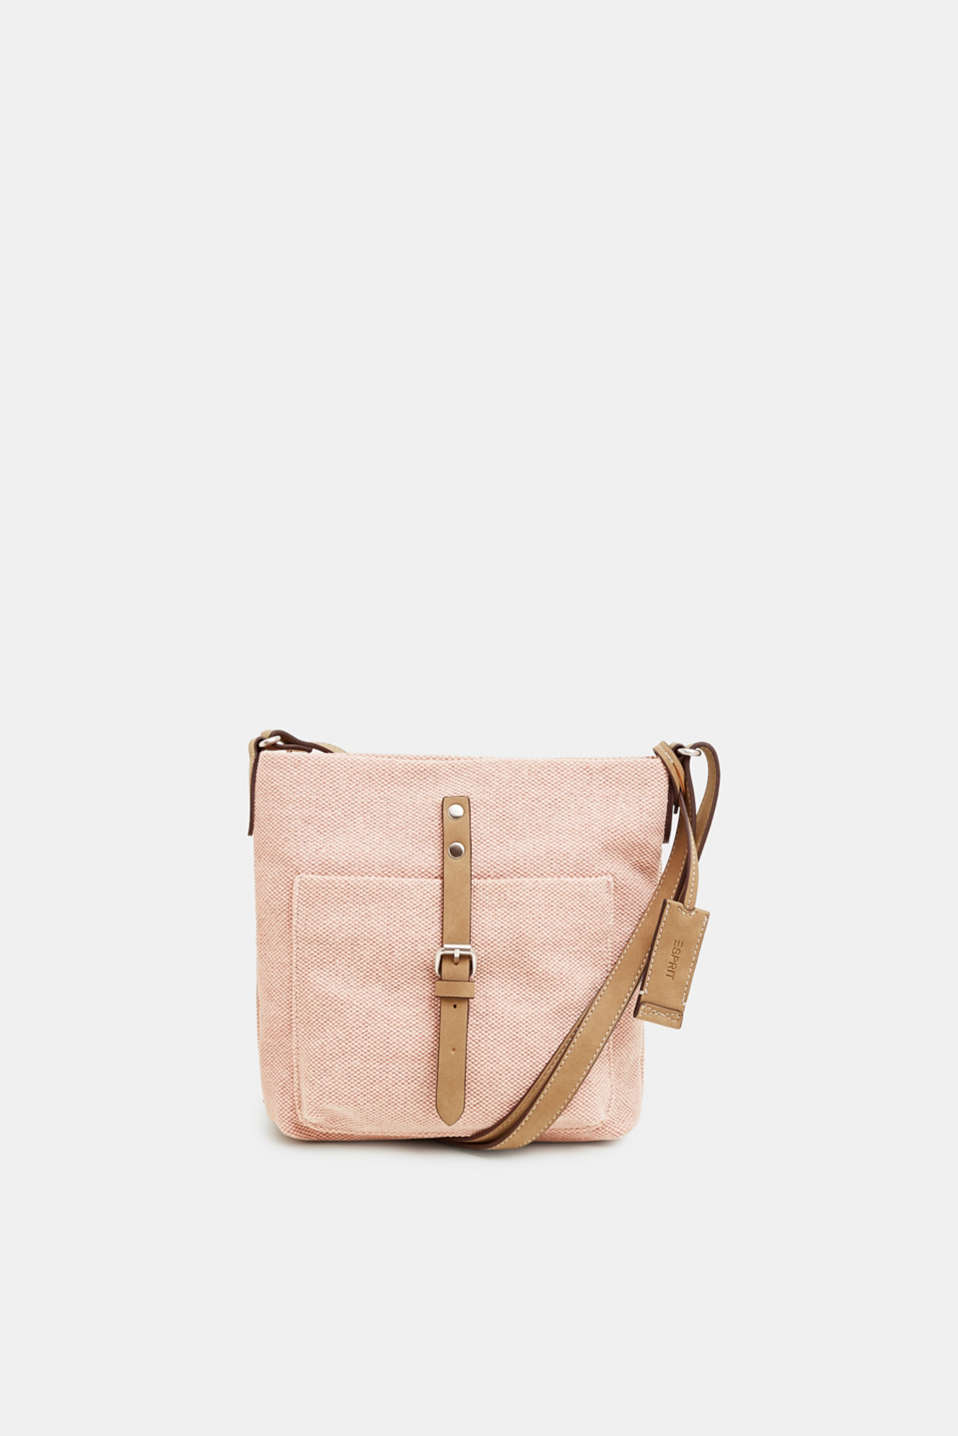 Esprit - Small shoulder bag made of cotton canvas